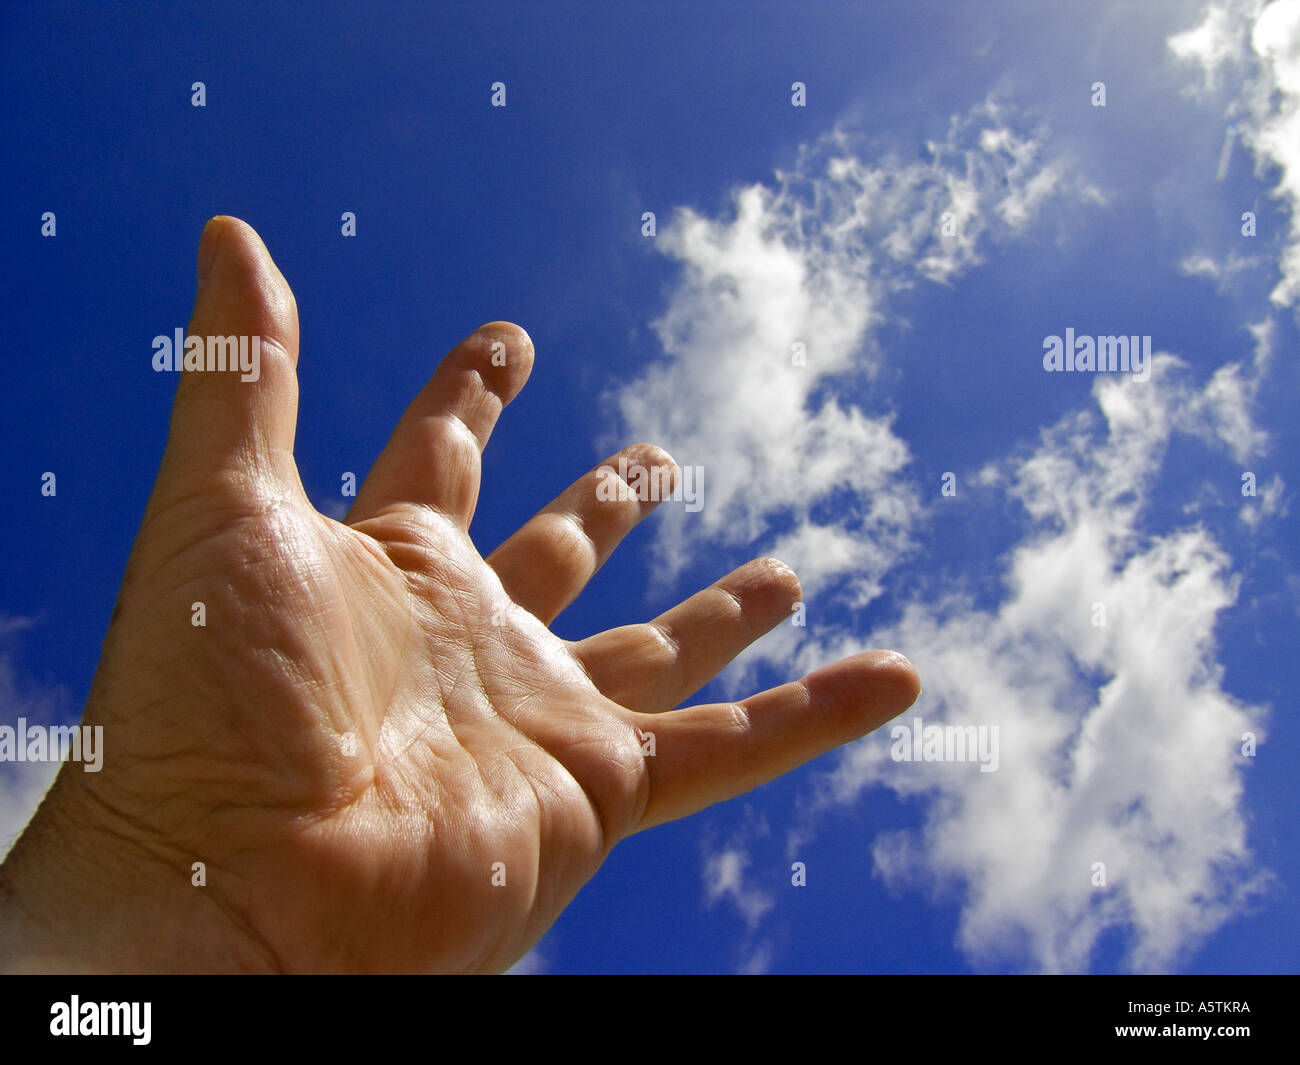 Male hand stretching up to a blue sky with clouds - Stock Image